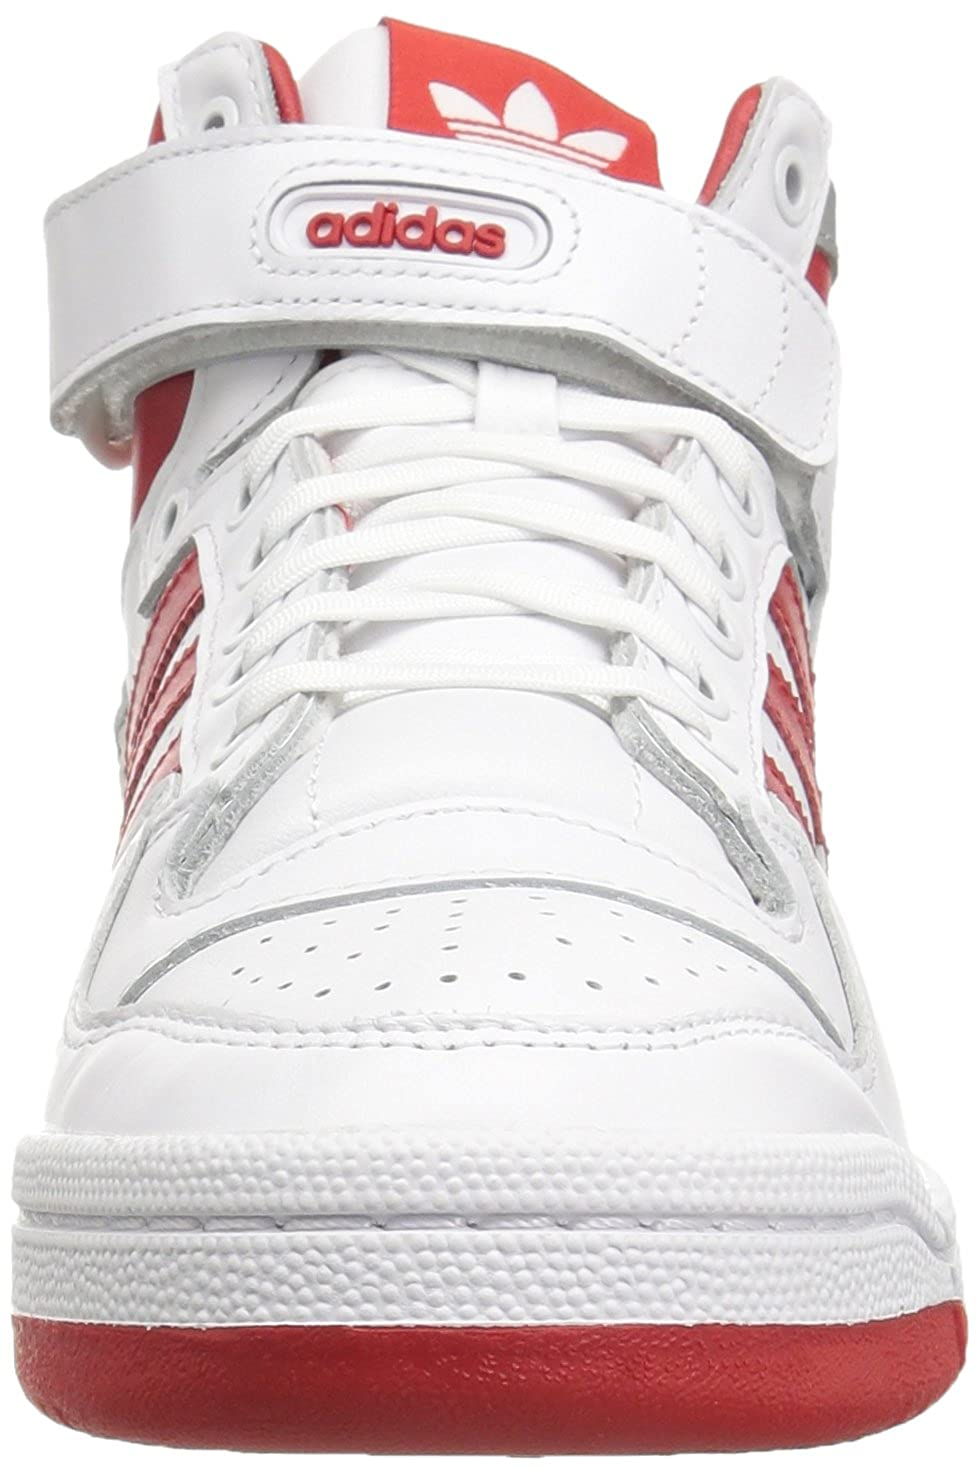 cheaper 6a17e eed89 Adidas OriginalsFORUM Mid Refined-M - Forum Moyen Raffiné Homme, Blanc (WhiteScarletSilver  Met.), (11 M US) Amazon.fr Chaussures et Sacs